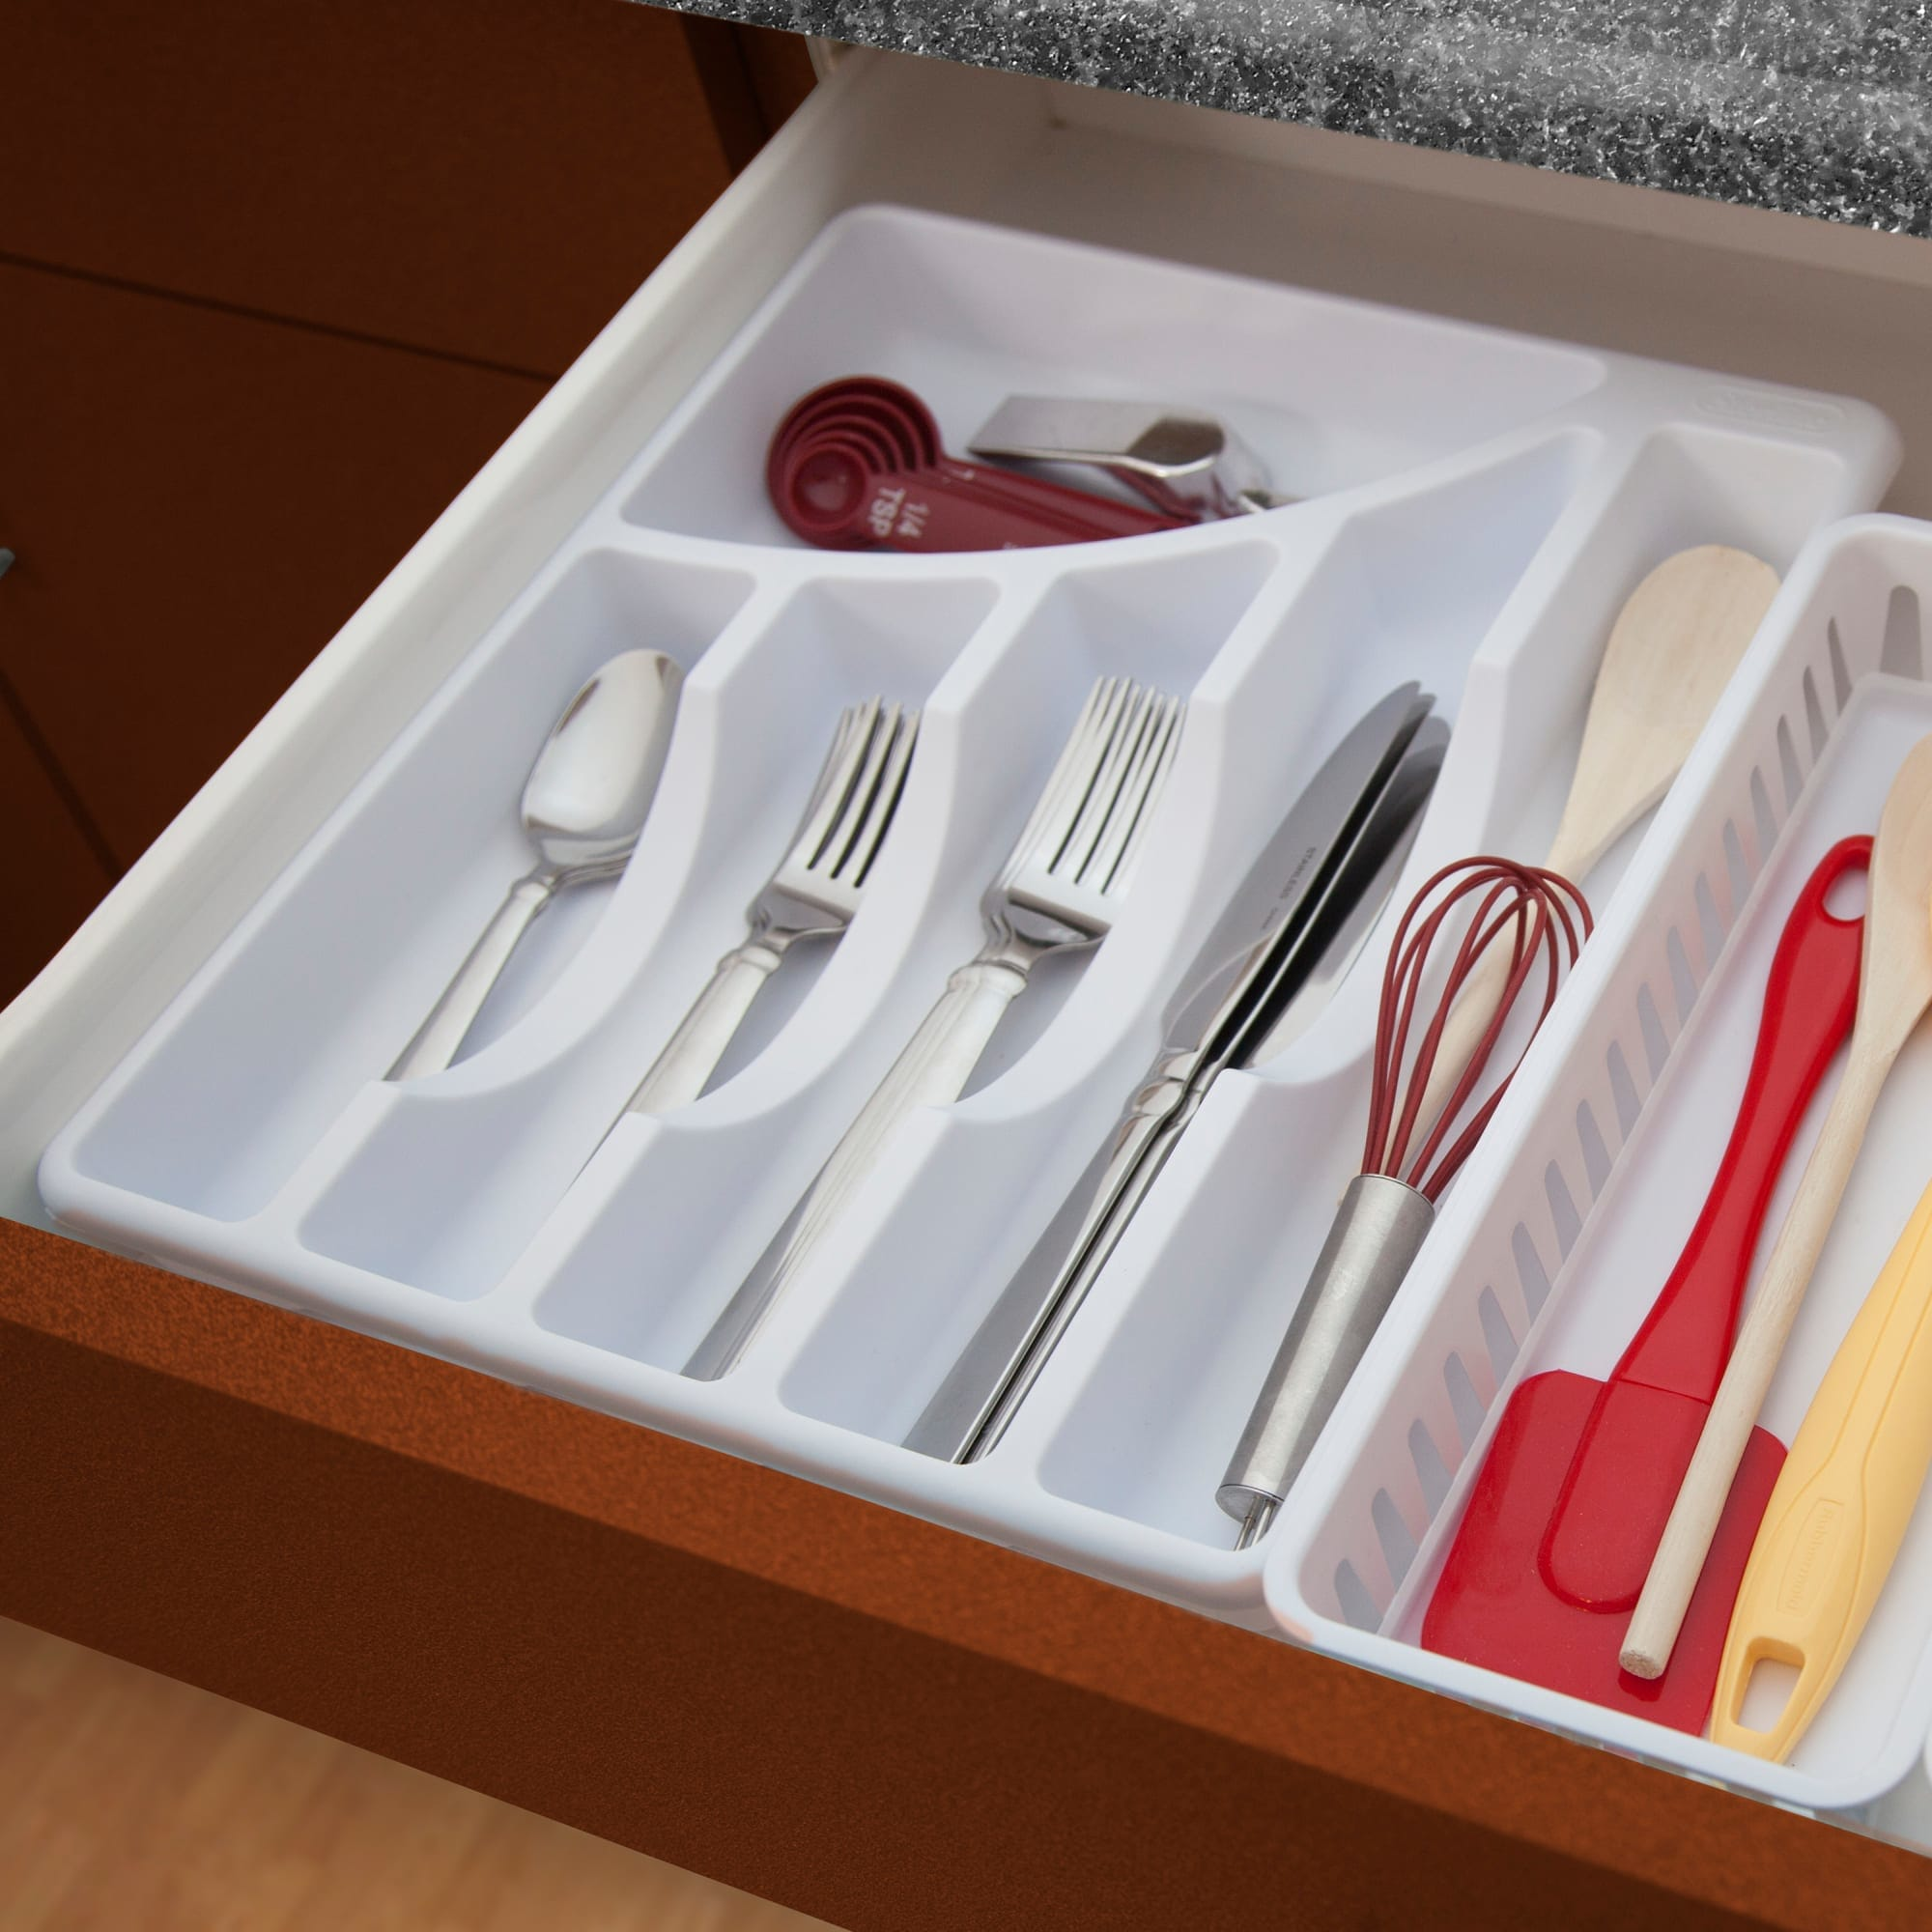 Sterilite 6 Compartment Cutlery Tray